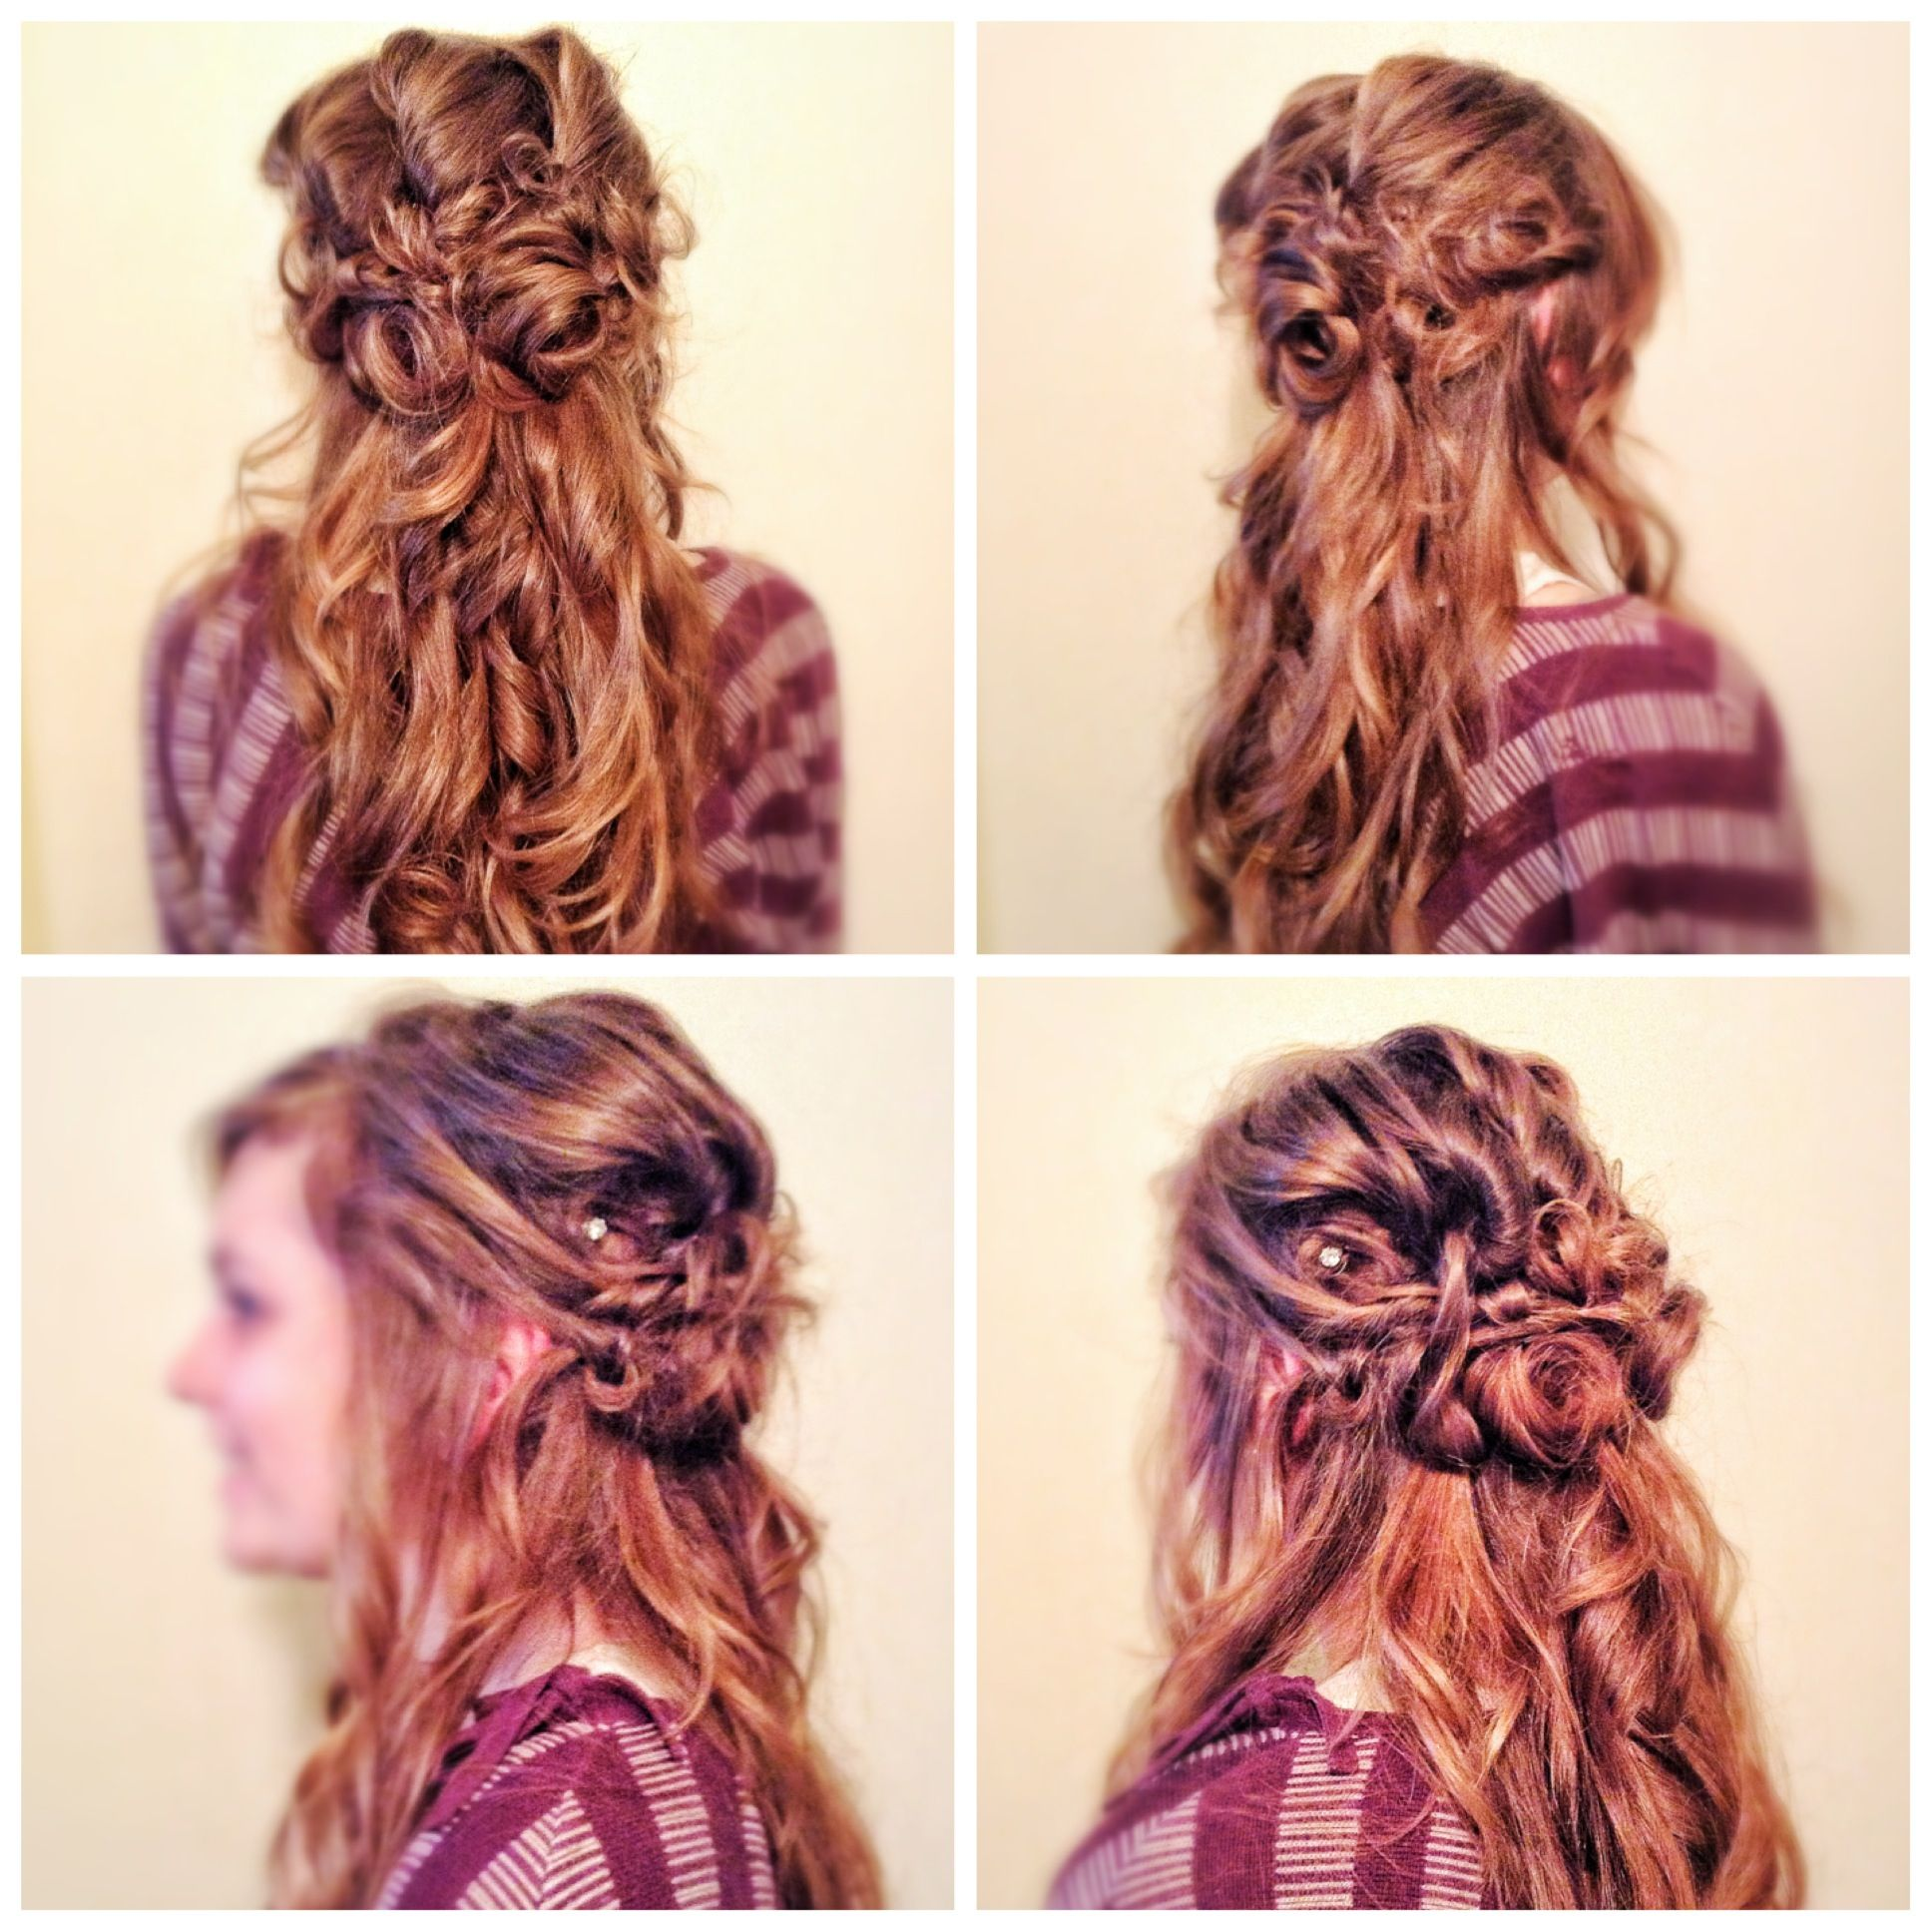 Prom hair #hairstyle